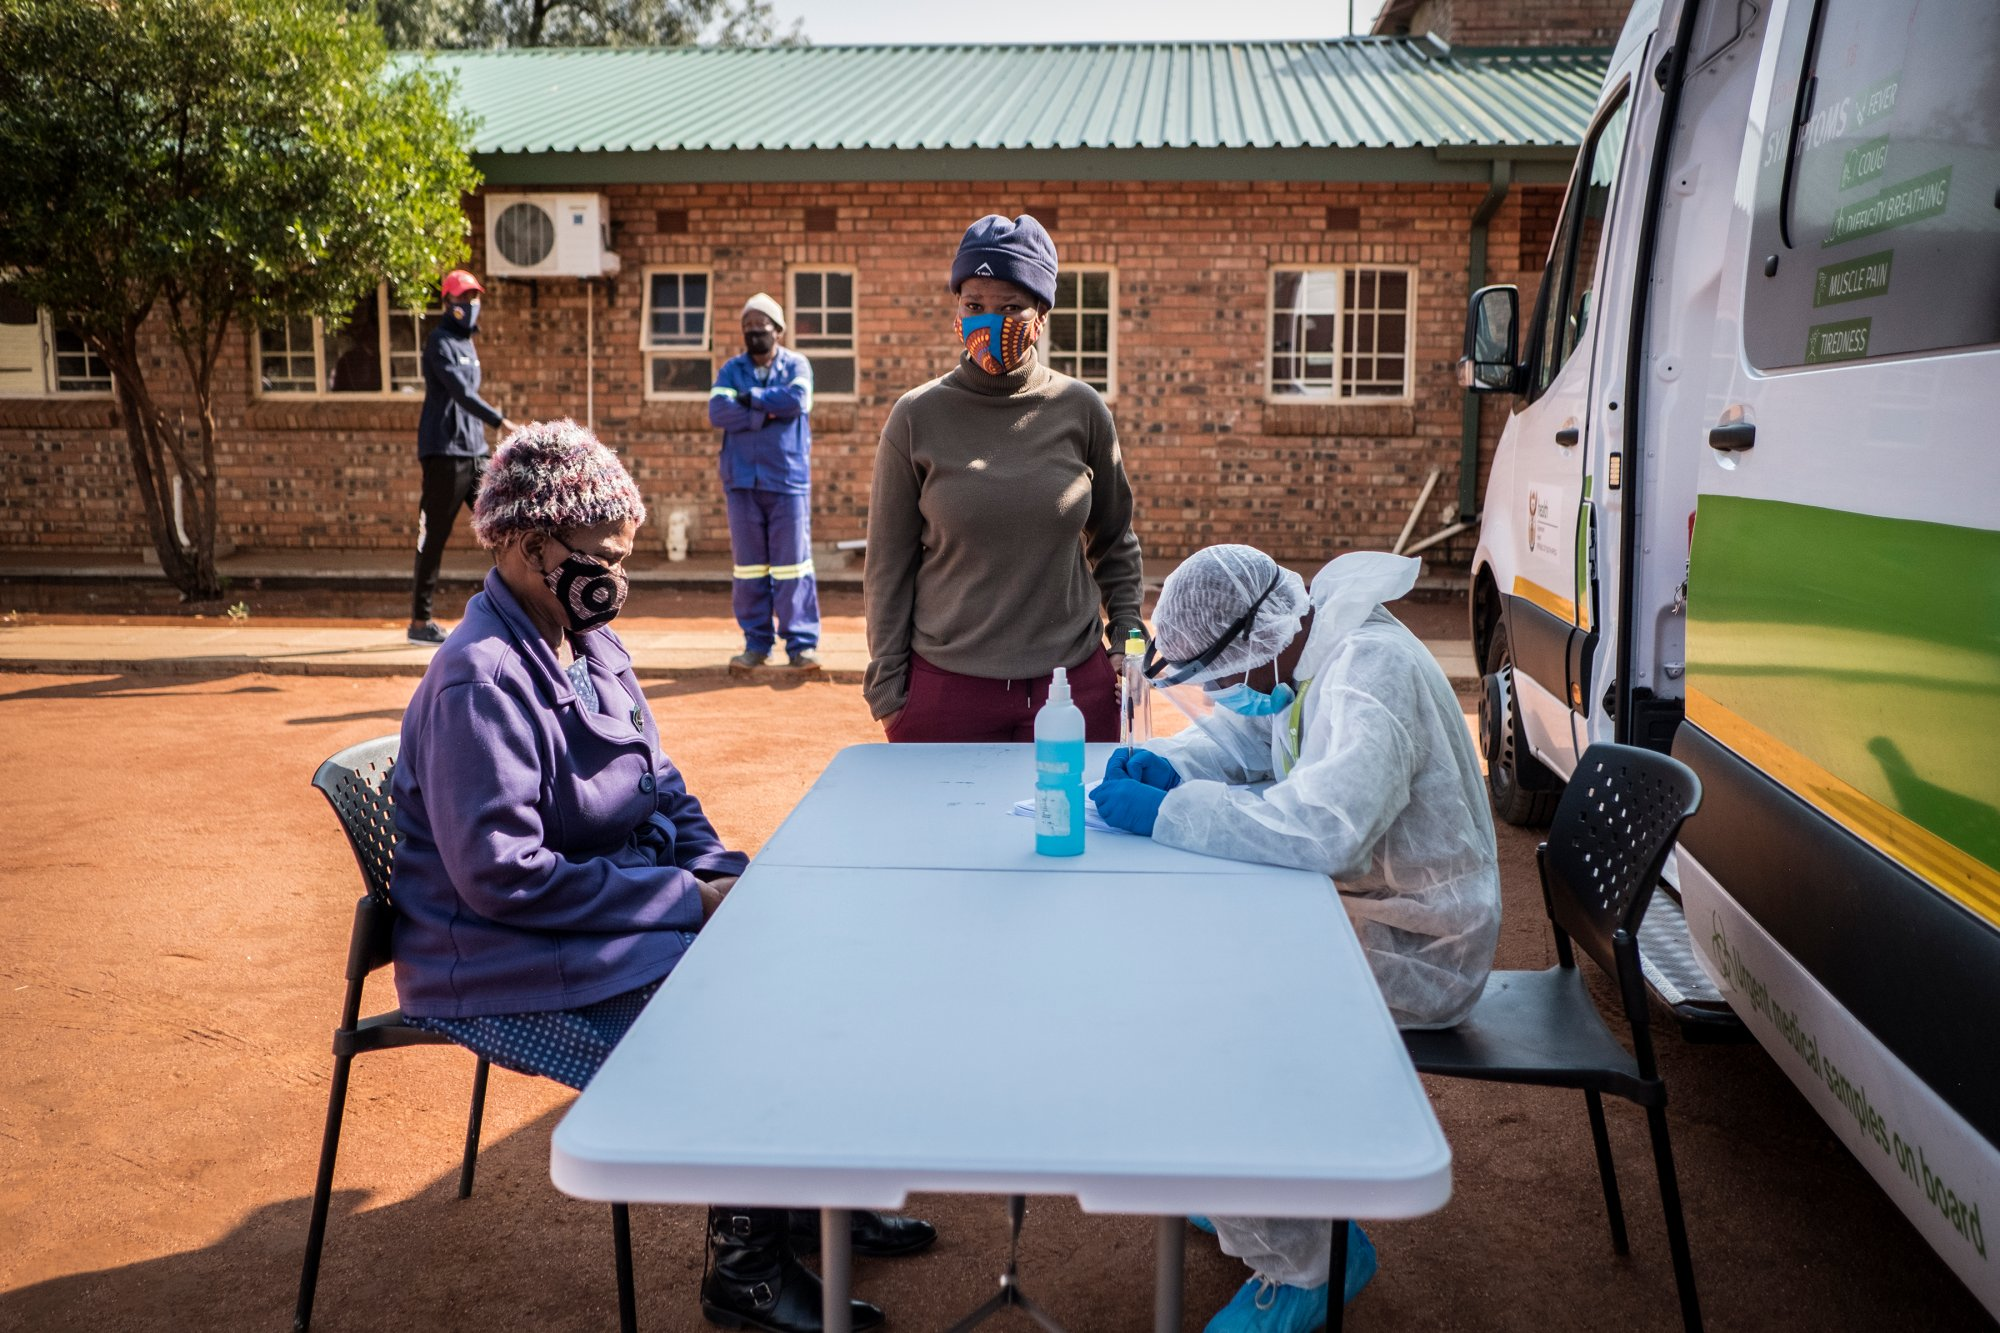 A nurse wearing PPE assess a masked person sitting in front as another masked person looks on.   Thomson Reuters Foundation